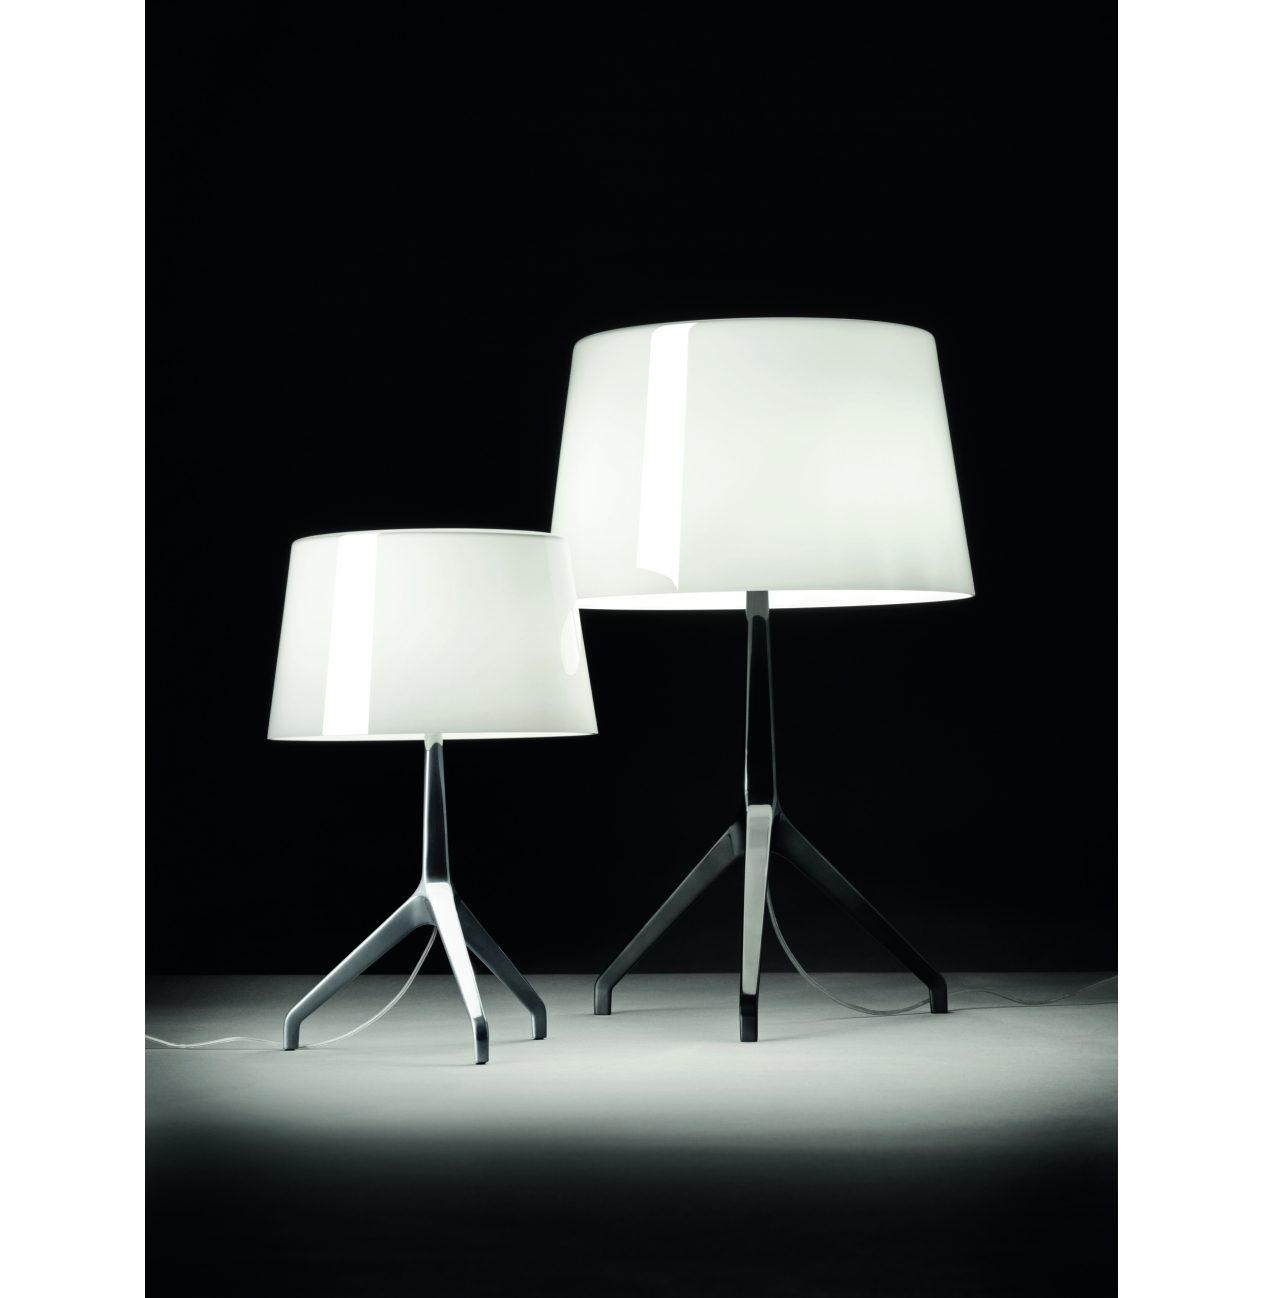 foscarini tafellamp lumiere xxs versteeg lichtstudio. Black Bedroom Furniture Sets. Home Design Ideas